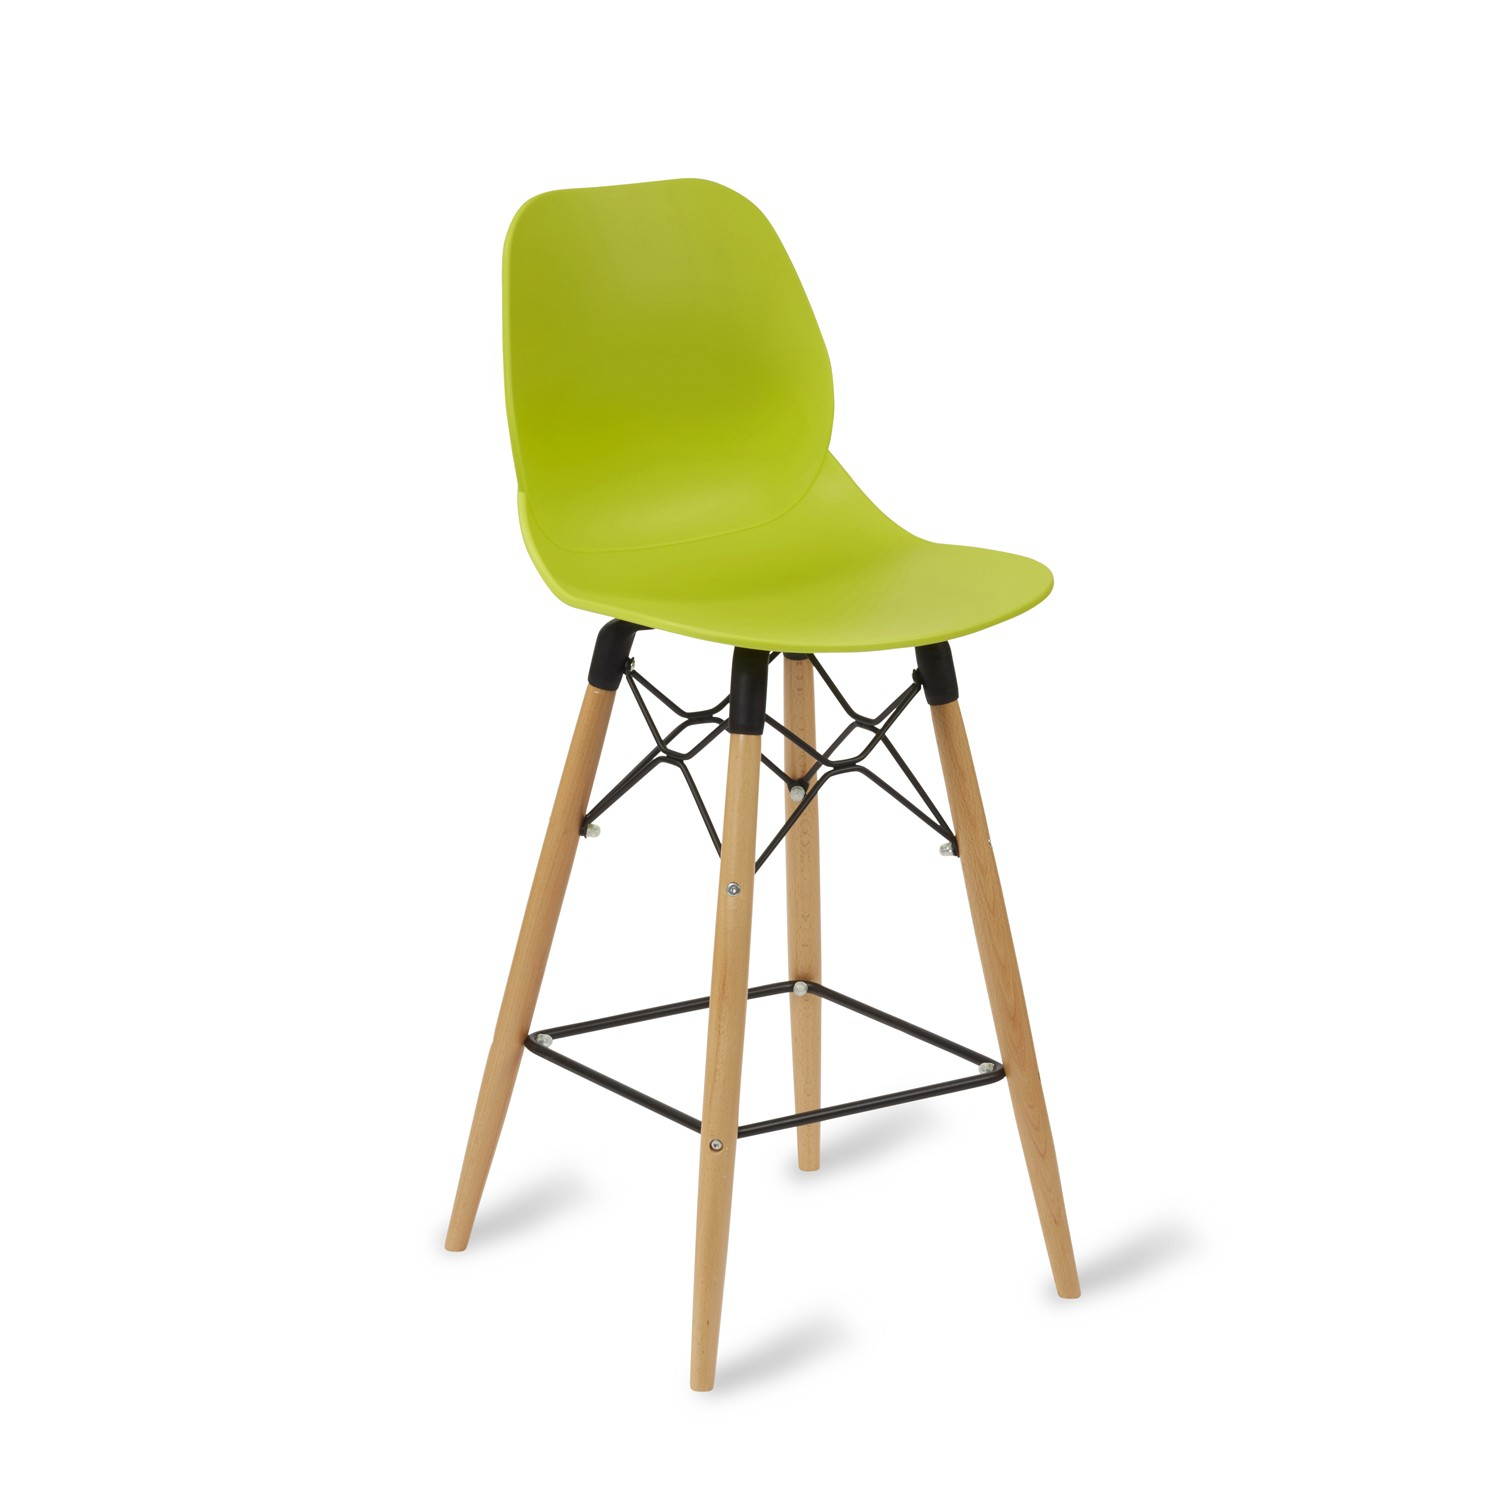 Lingwood Chair, Mid Height Stool